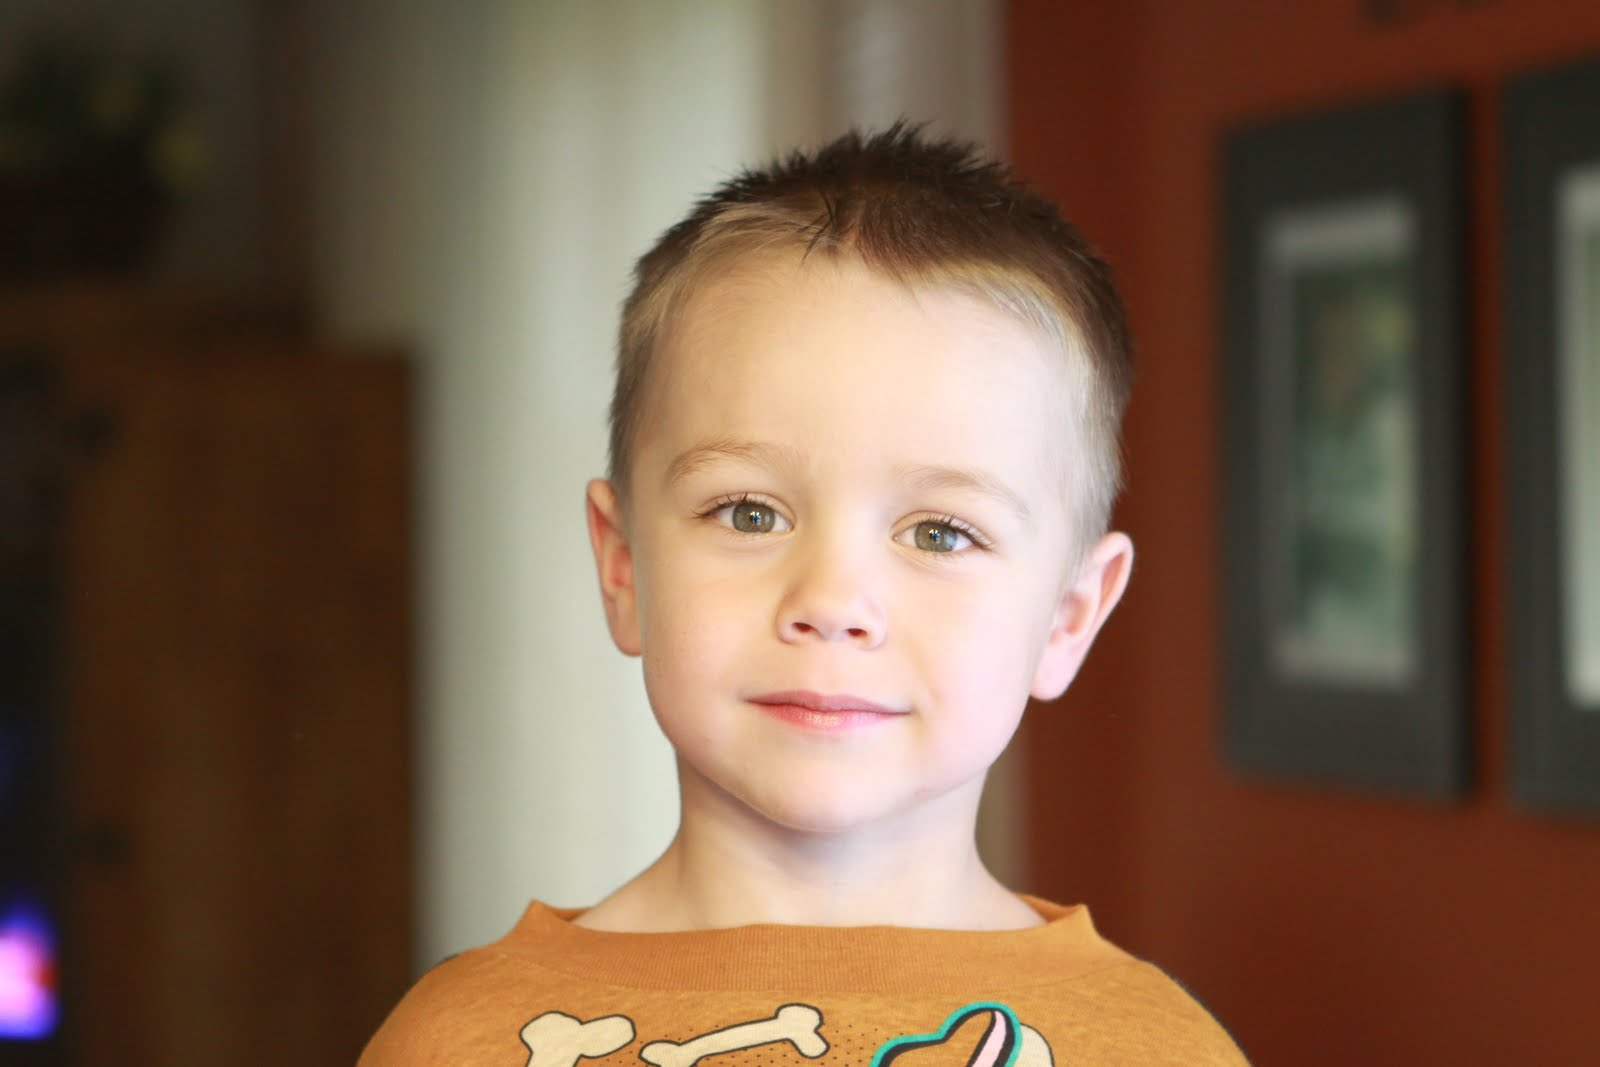 Buzz Cuts For Boys http://powersalaska.blogspot.com/2010_08_01_archive.html